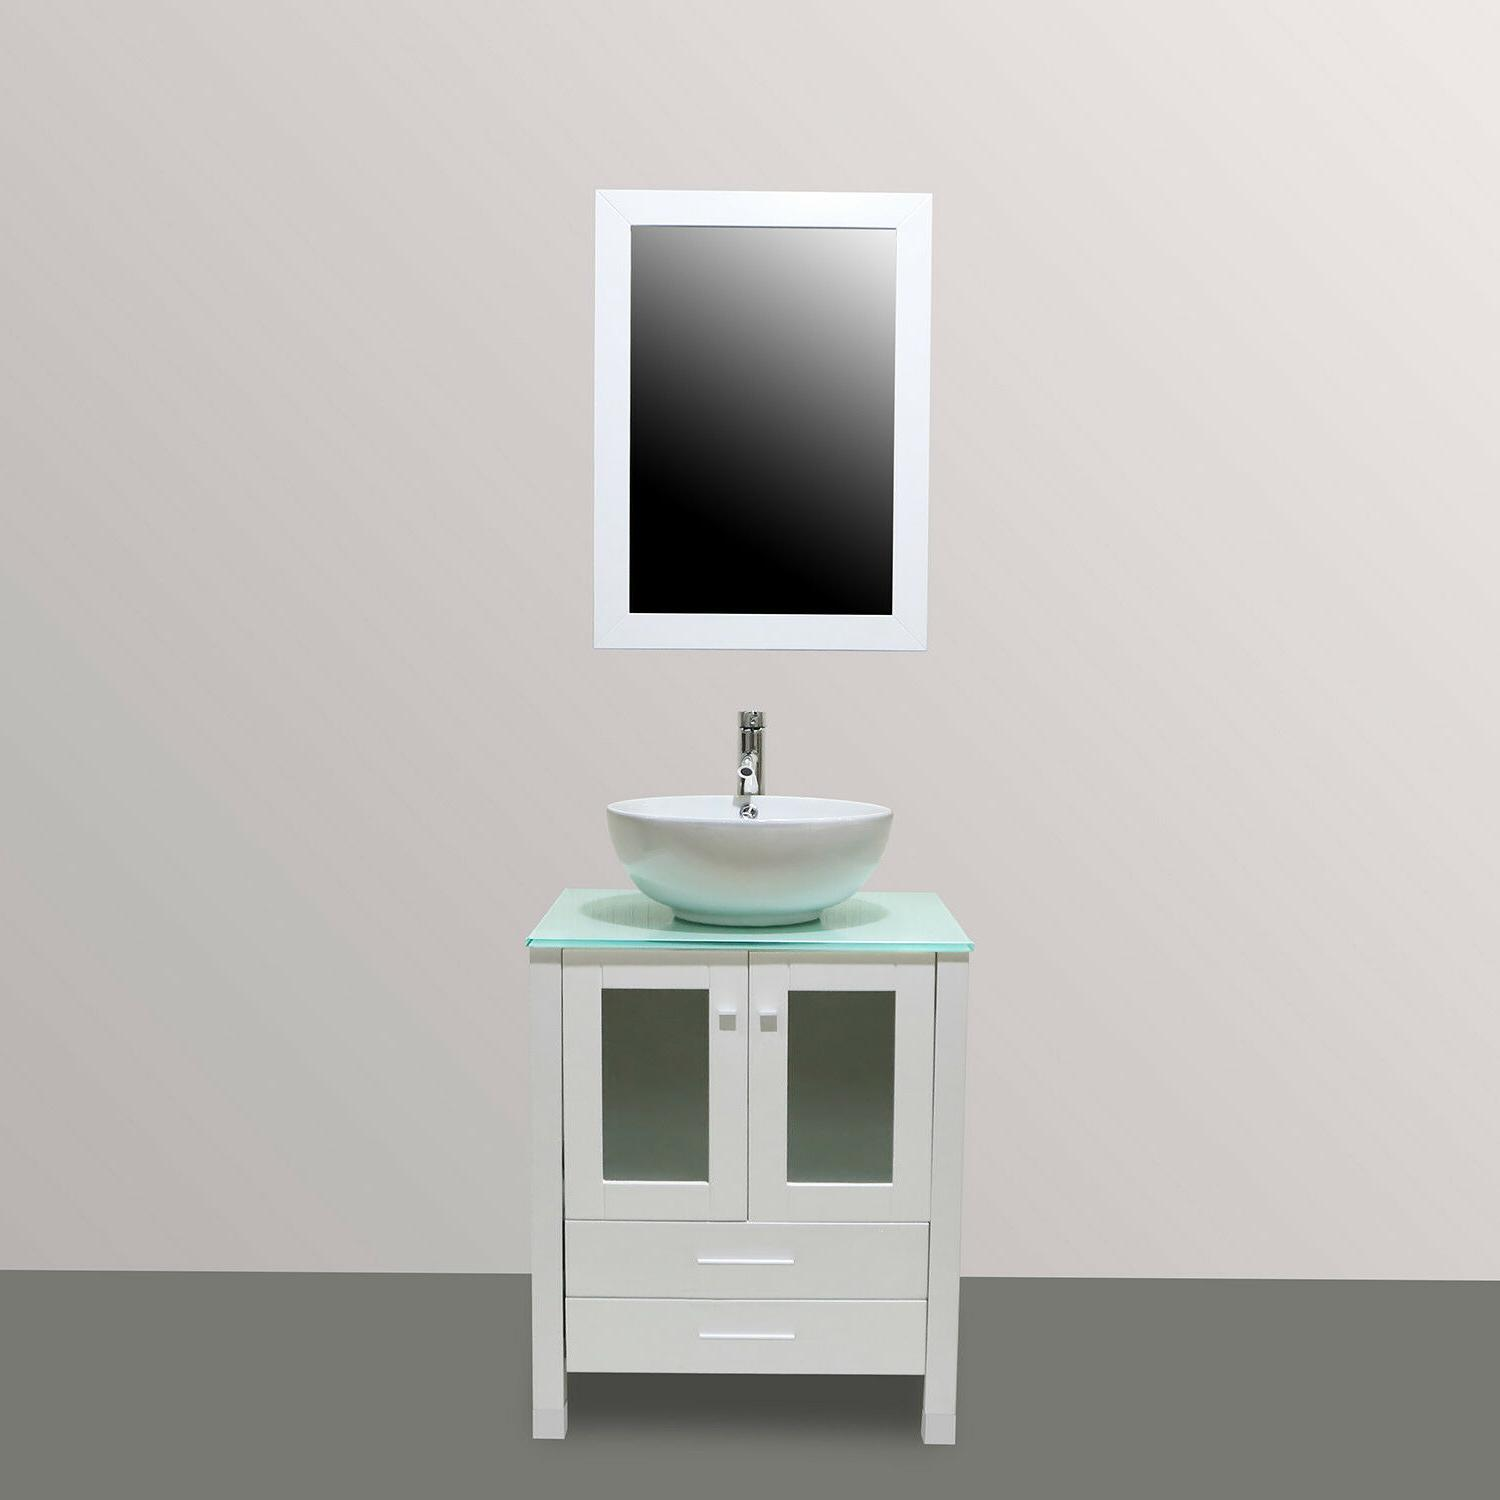 48-inch Vanities Double Cabinets Ceramic Sinks